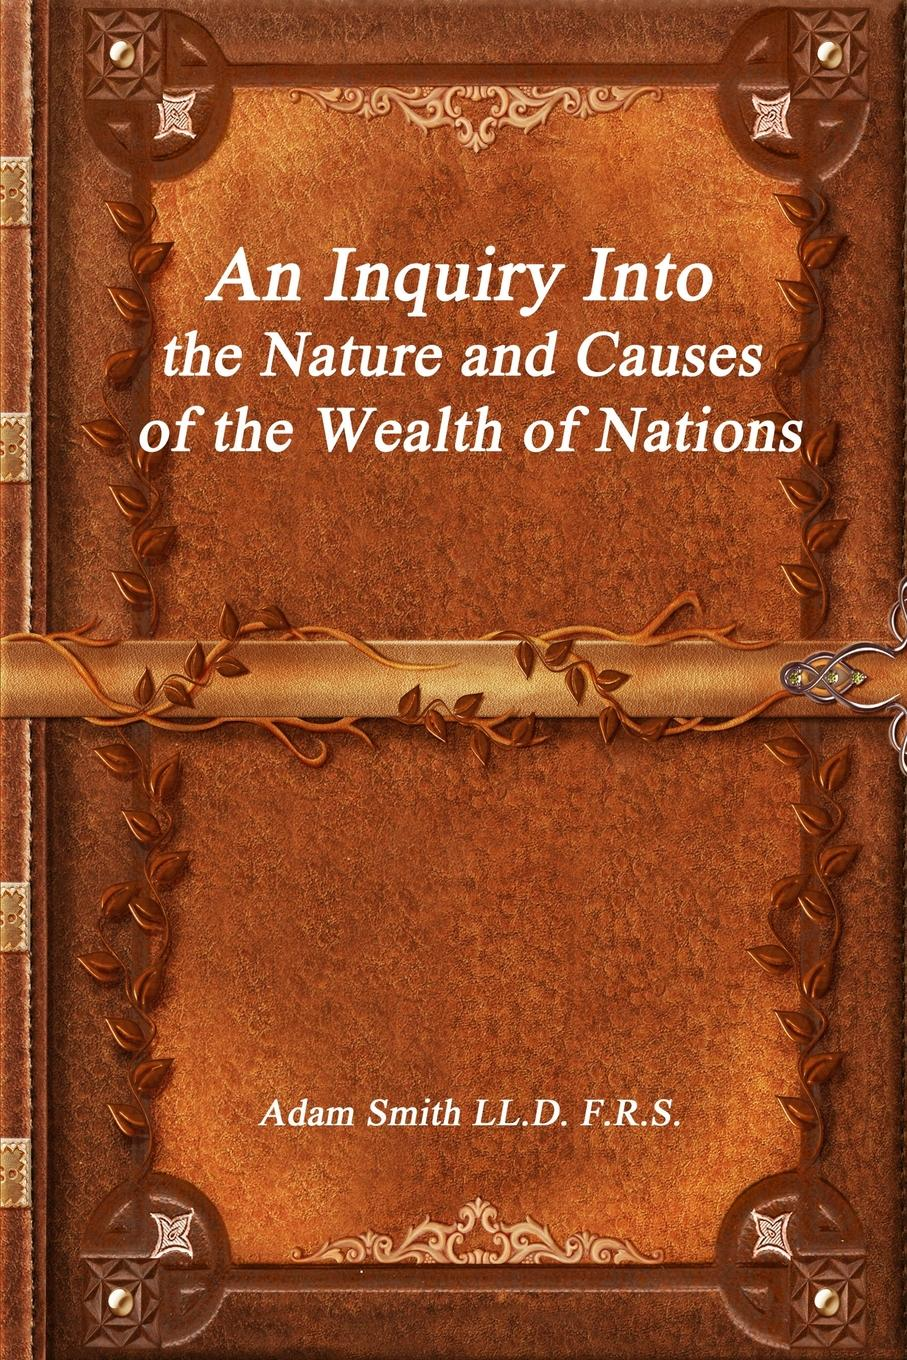 Adam Smith LL.D. F.R.S. An Inquiry Into the Nature and Causes of the Wealth of Nations stephen moore an inquiry into the nature and causes of the wealth of states how taxes energy and worker freedom change everything